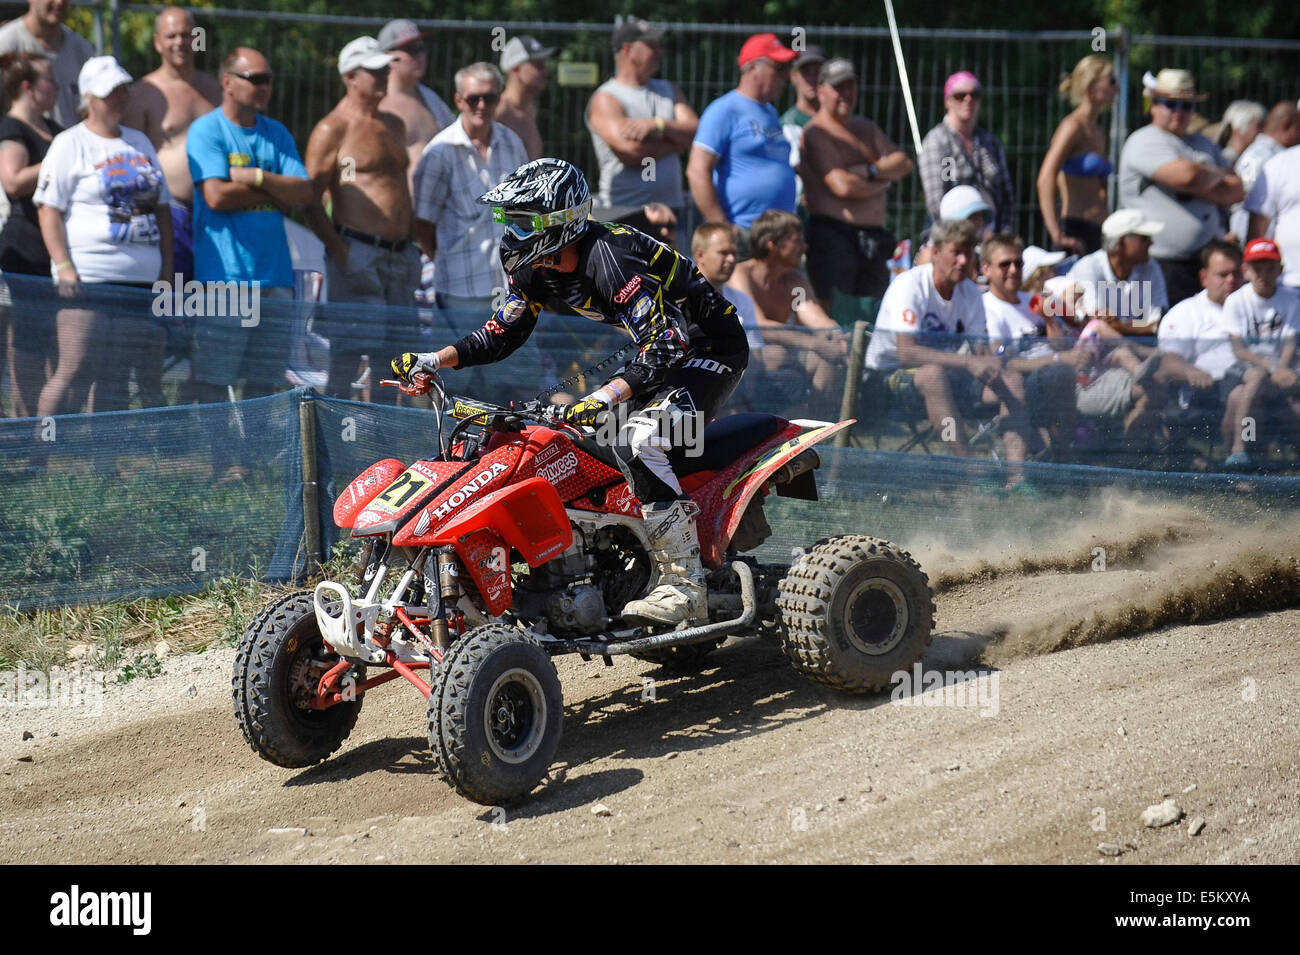 Kivioli. 3rd Aug, 2014. Nicklas Thomsen of Sweden competes during the MAXXIS Quadcross European Championship held - Stock Image